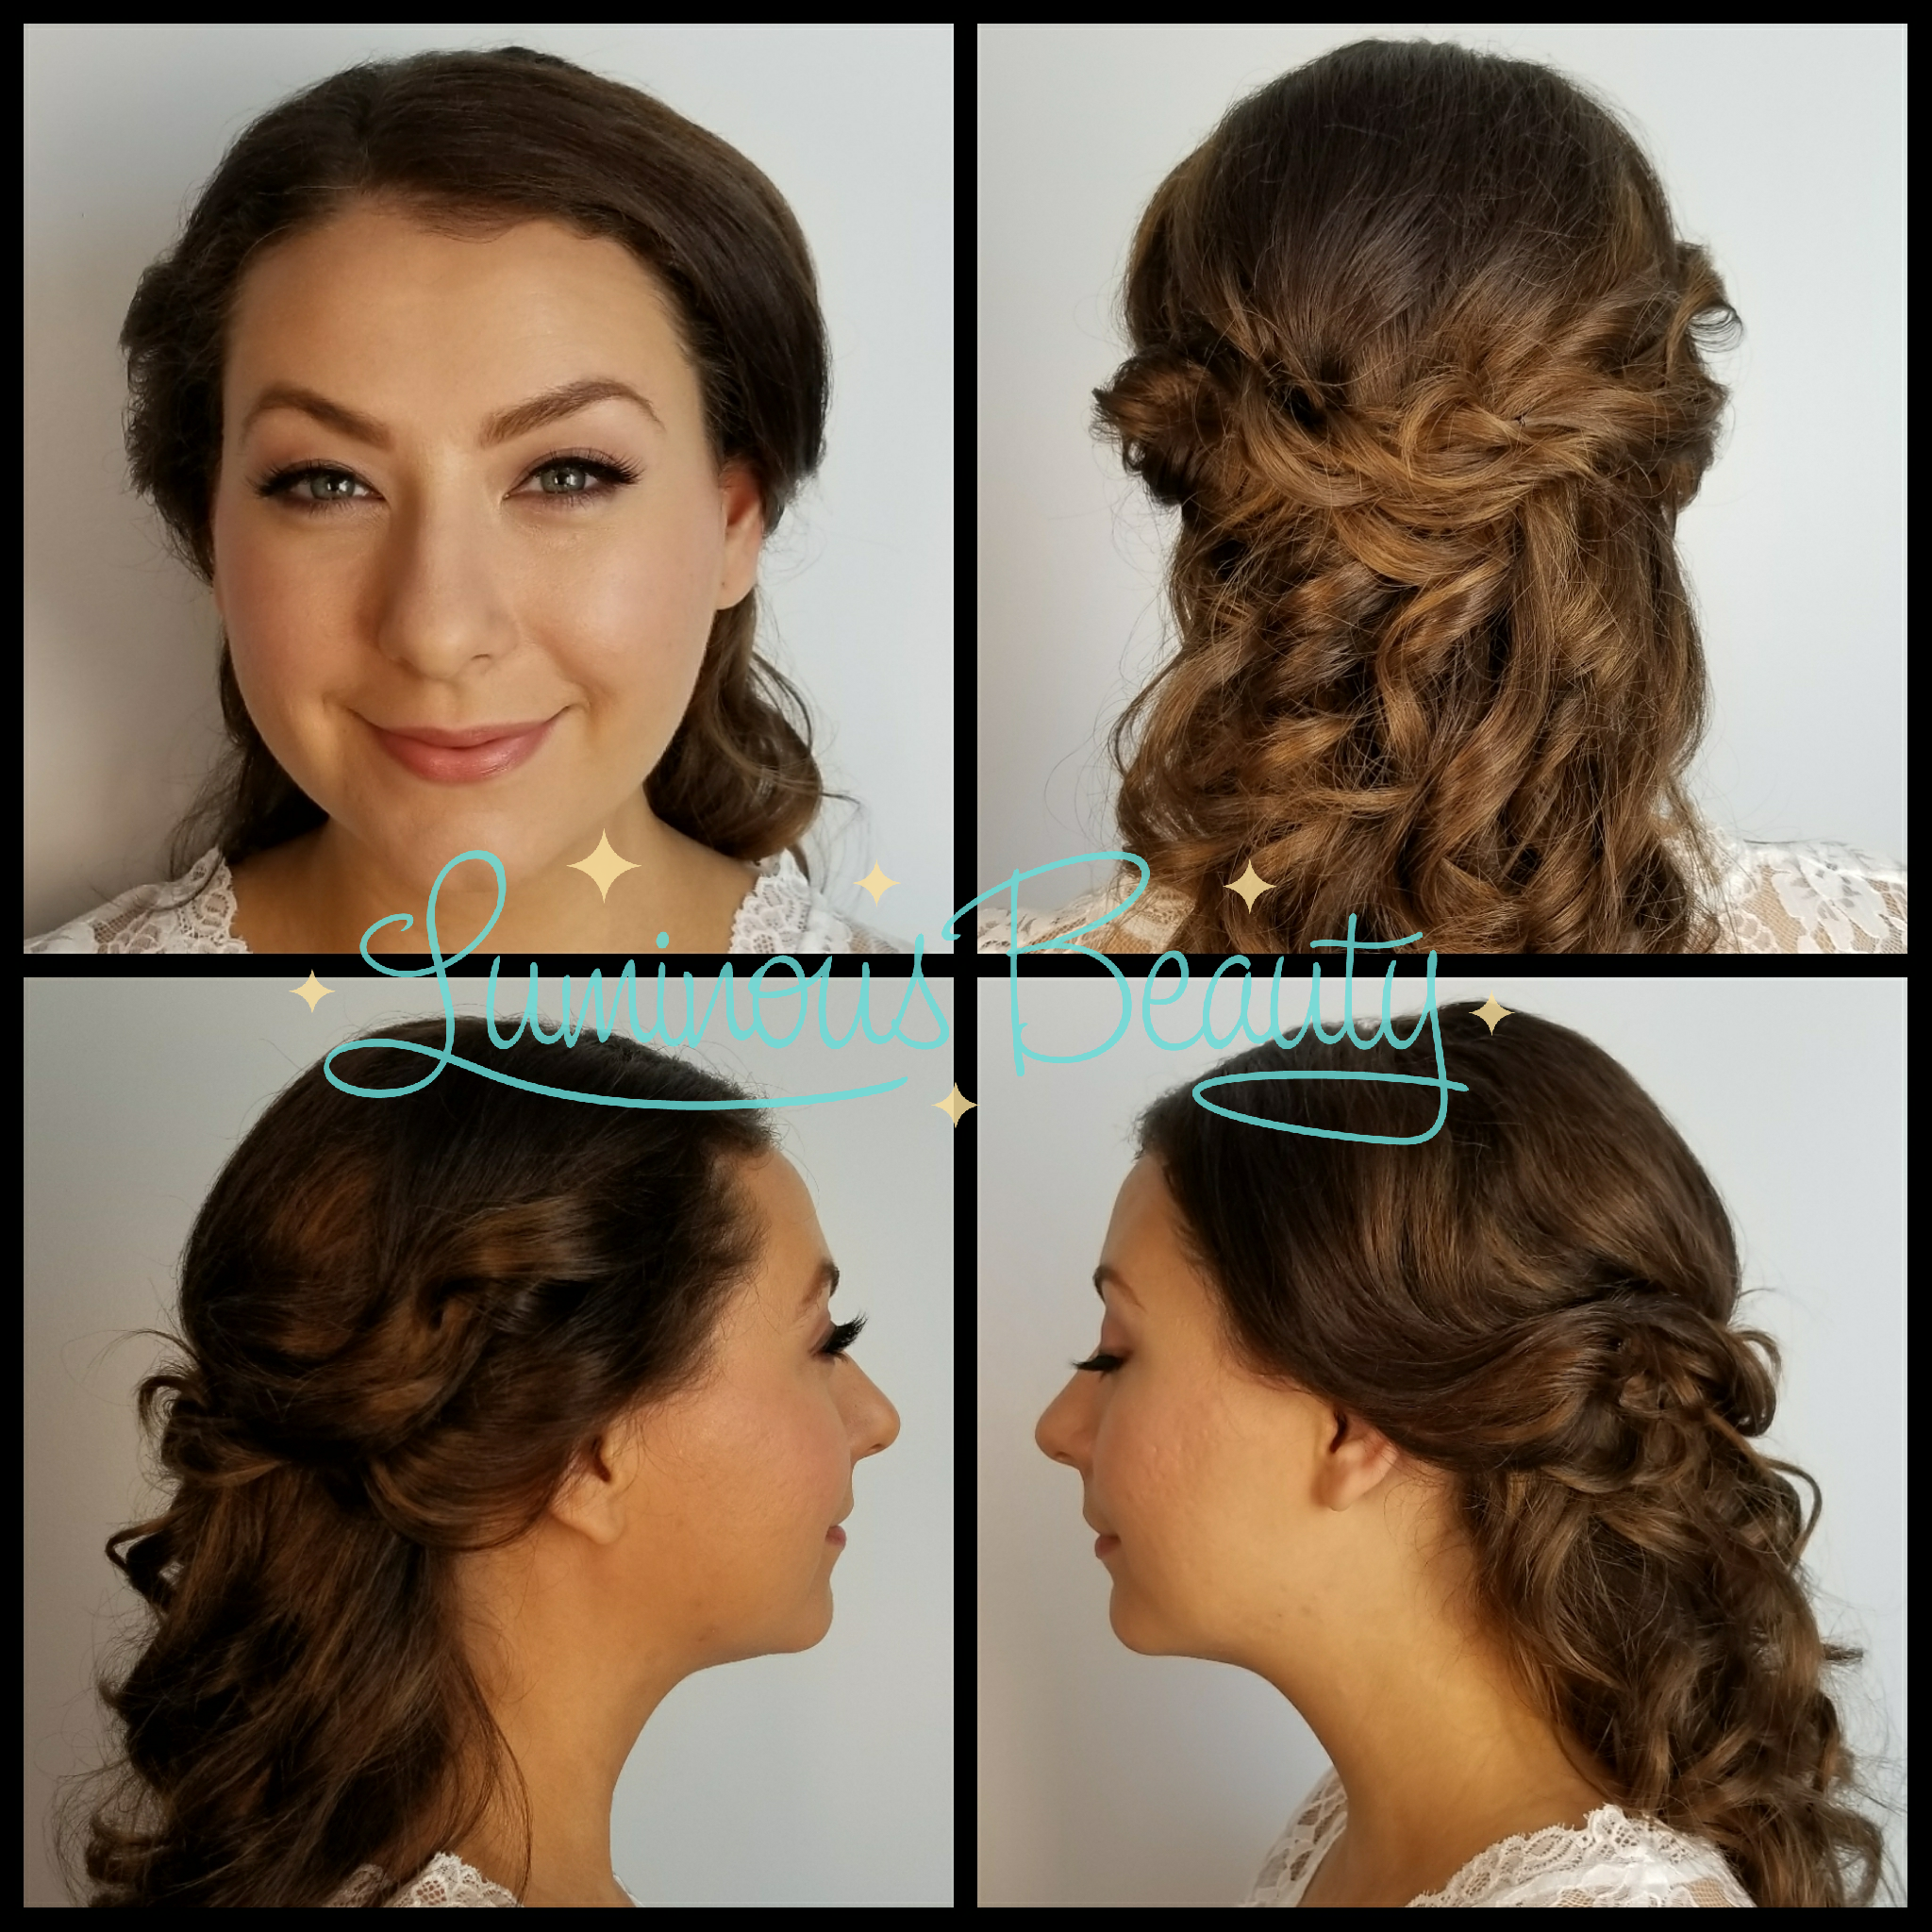 Personal Attendant Makeup with Lashes. Luminous Beauty Makeup20171001_164131.png